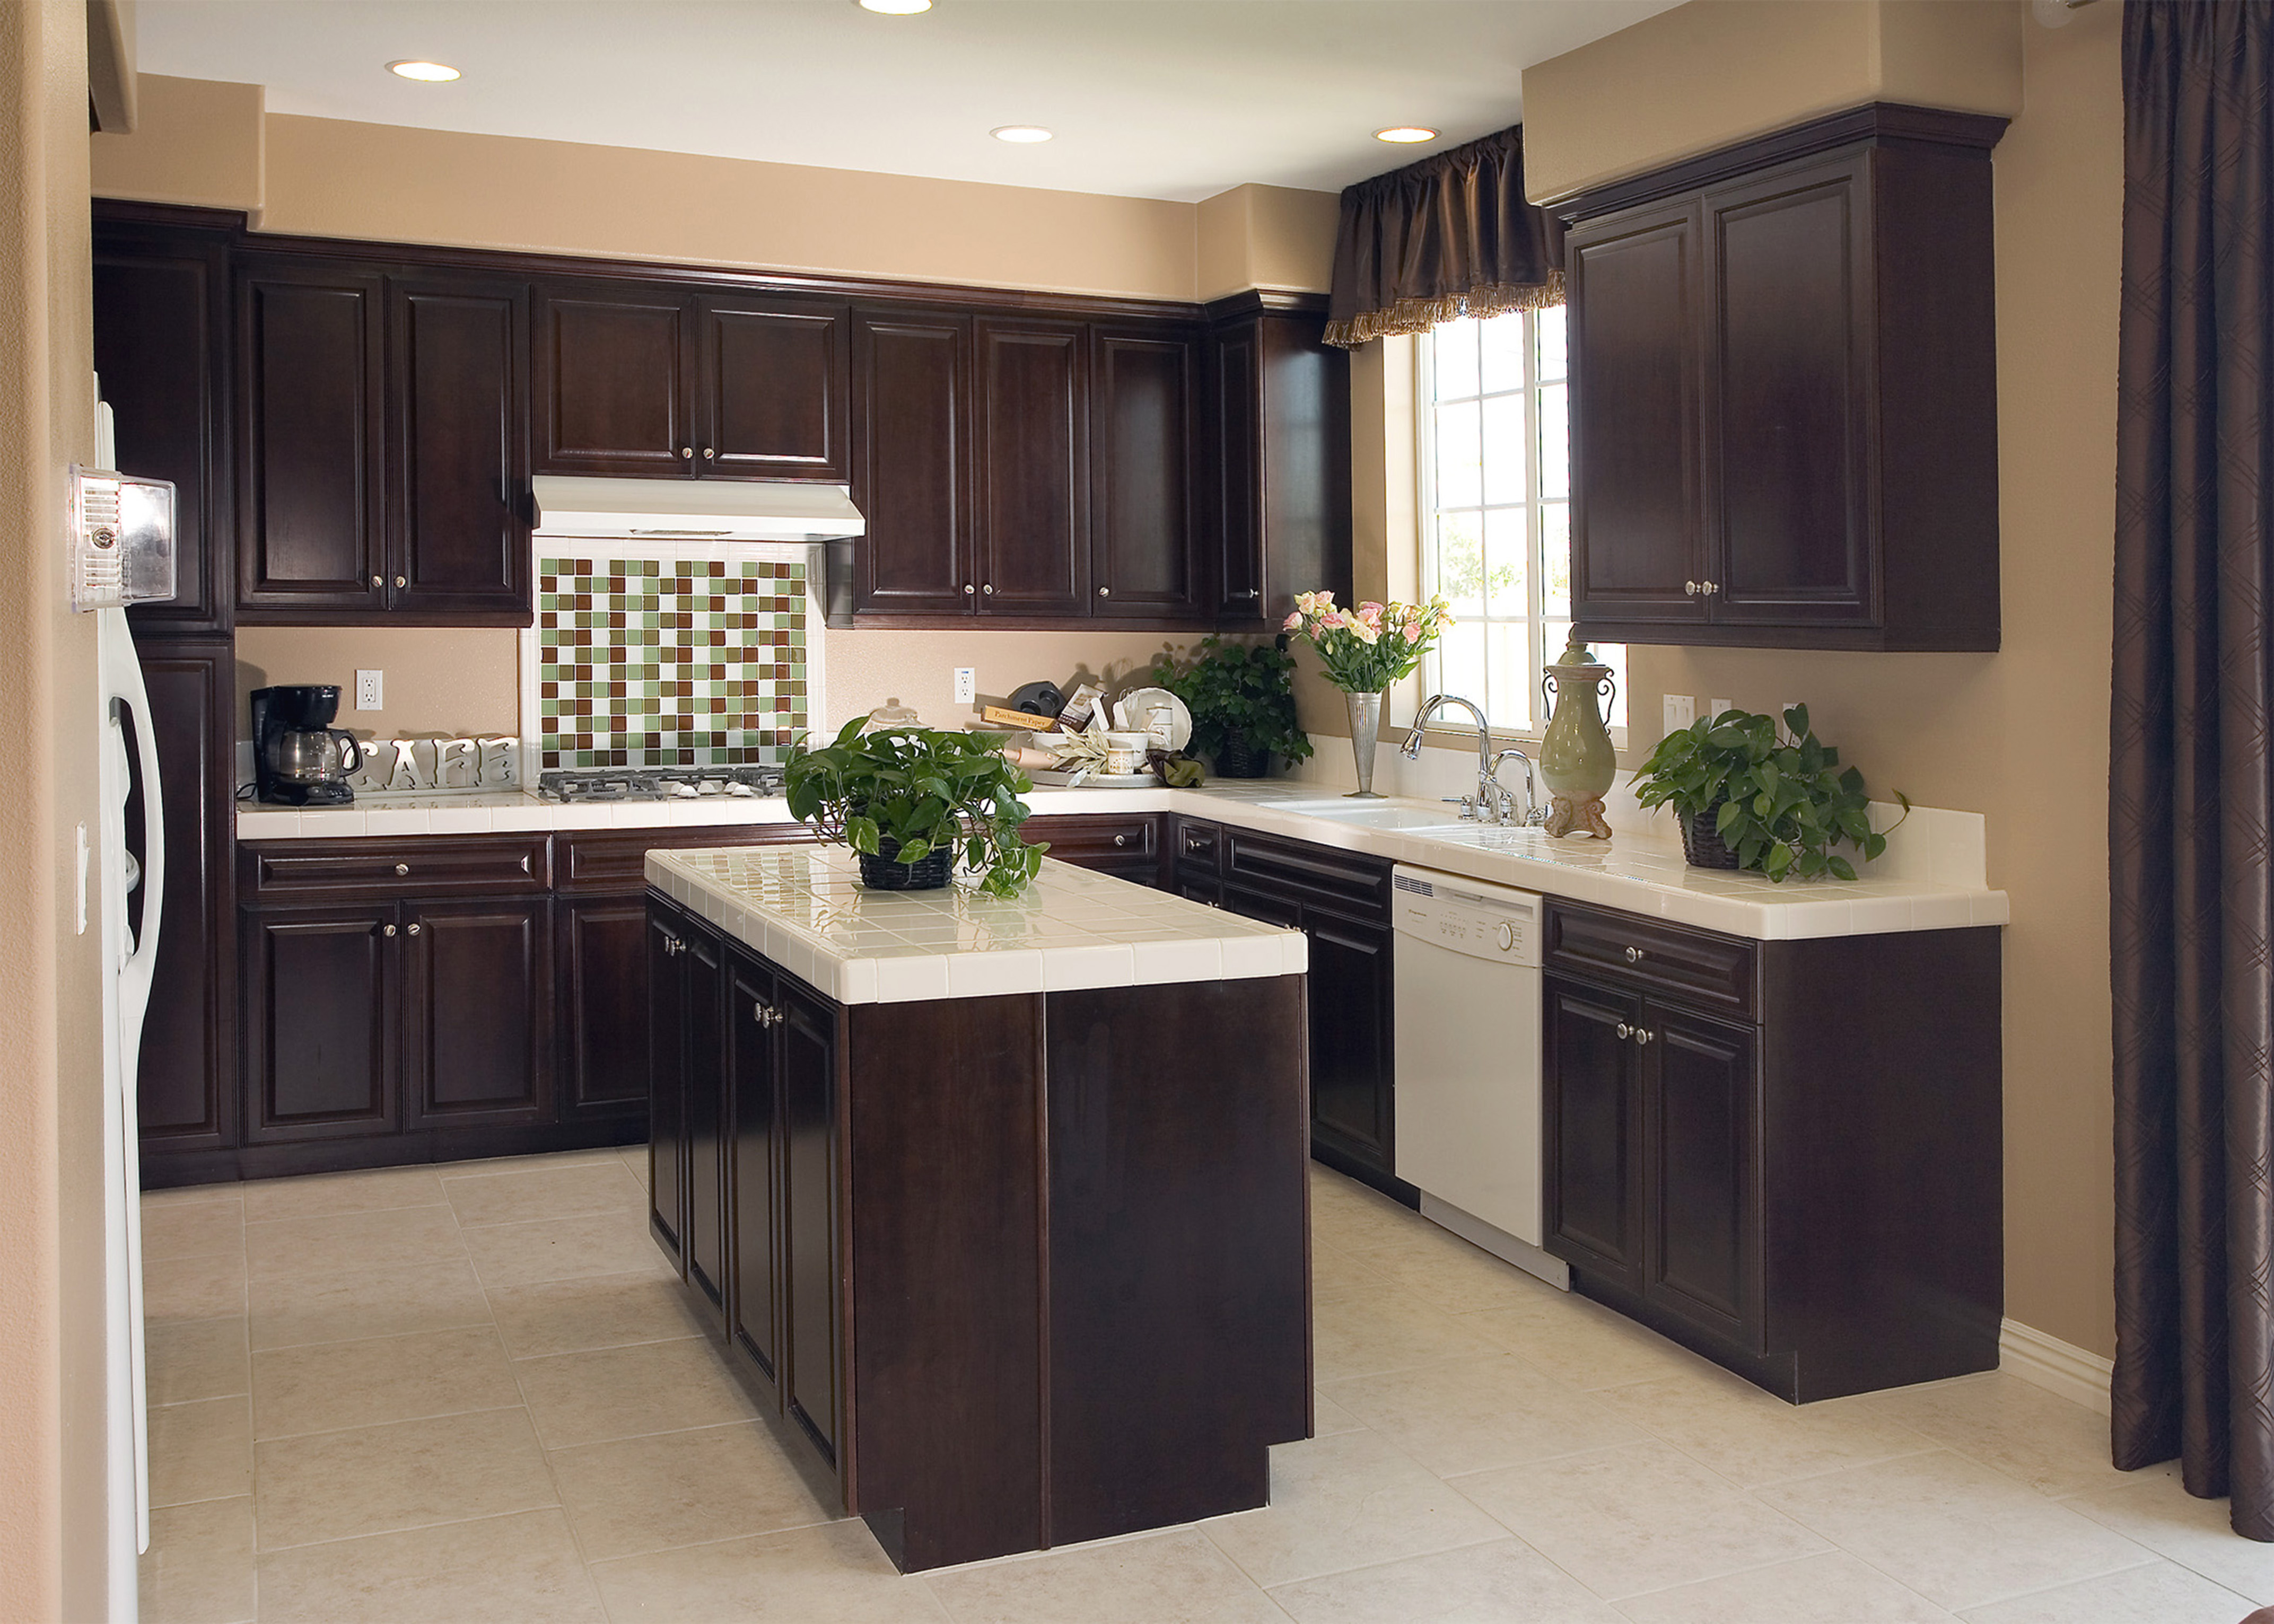 apartments remodeling contractor kitchen bath cabinets kitchen cabinets phoenix apartments kitchen cabinets remodeling contractor phoenix